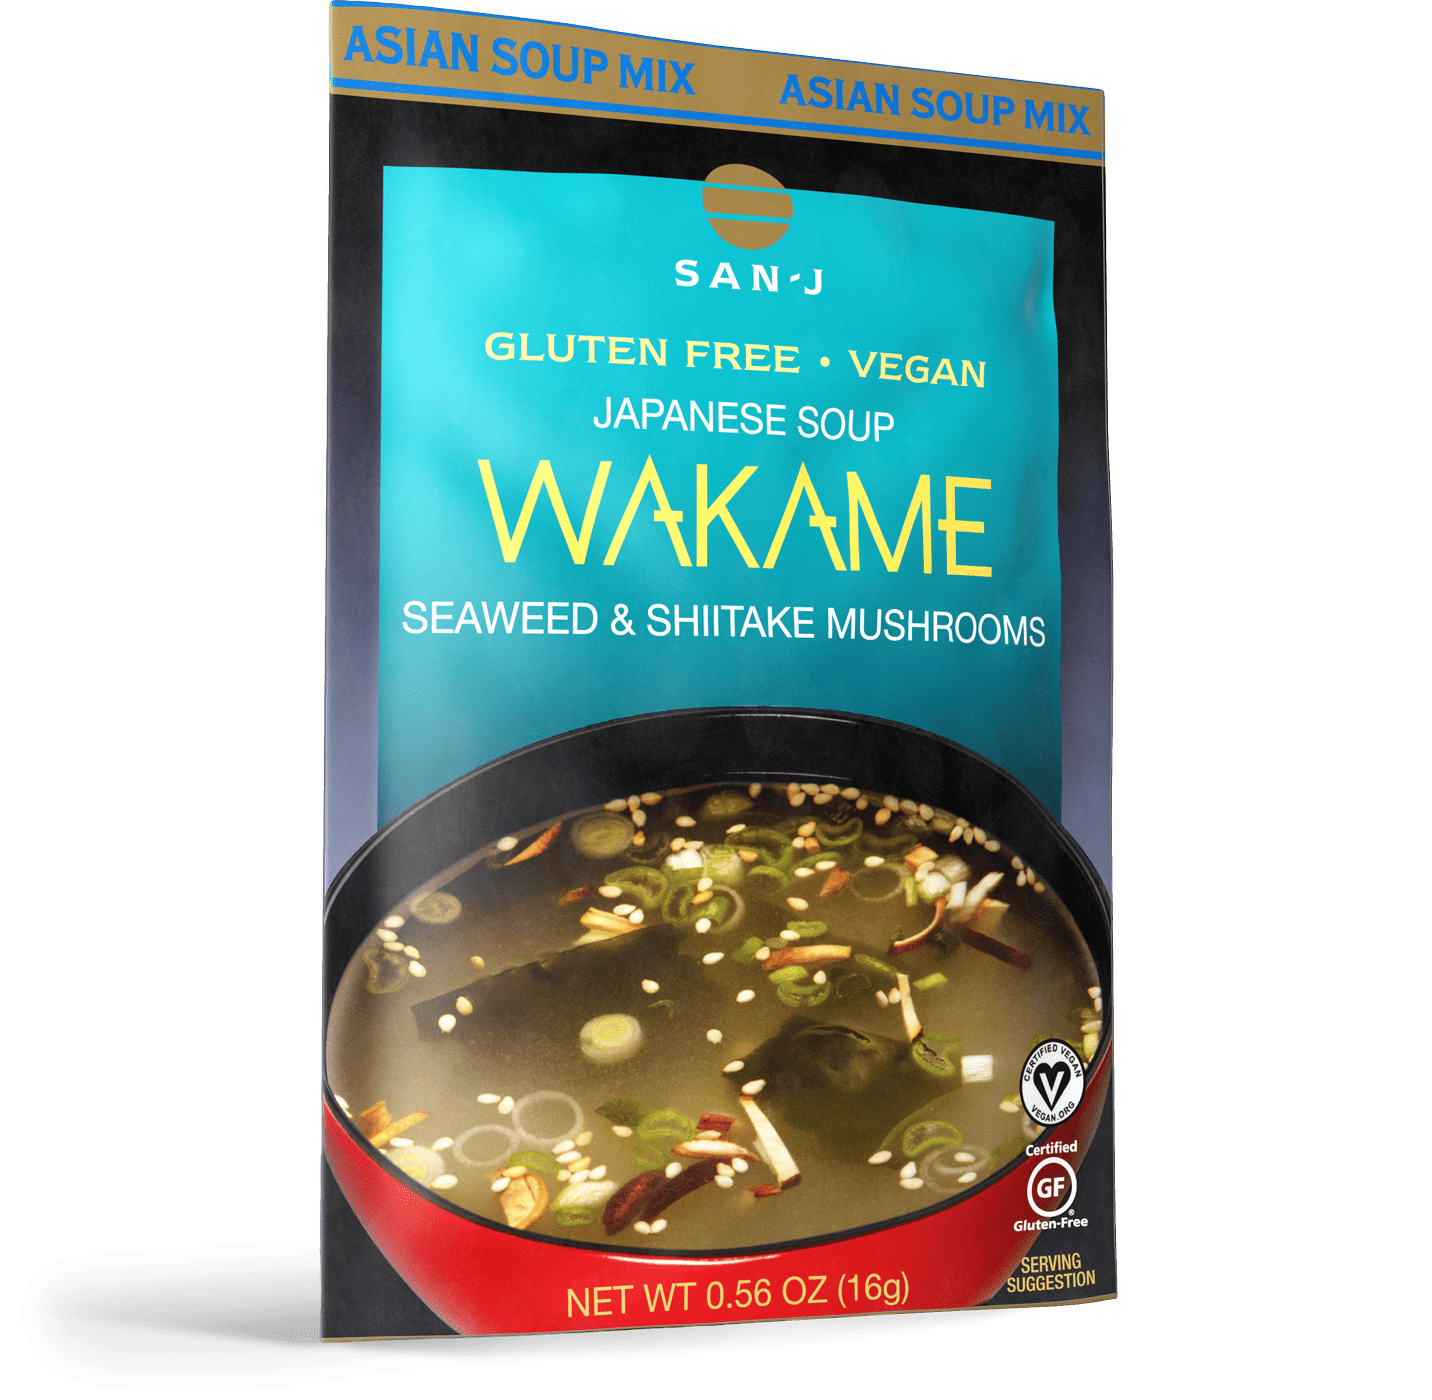 Wakame soup no bg w shadow v2